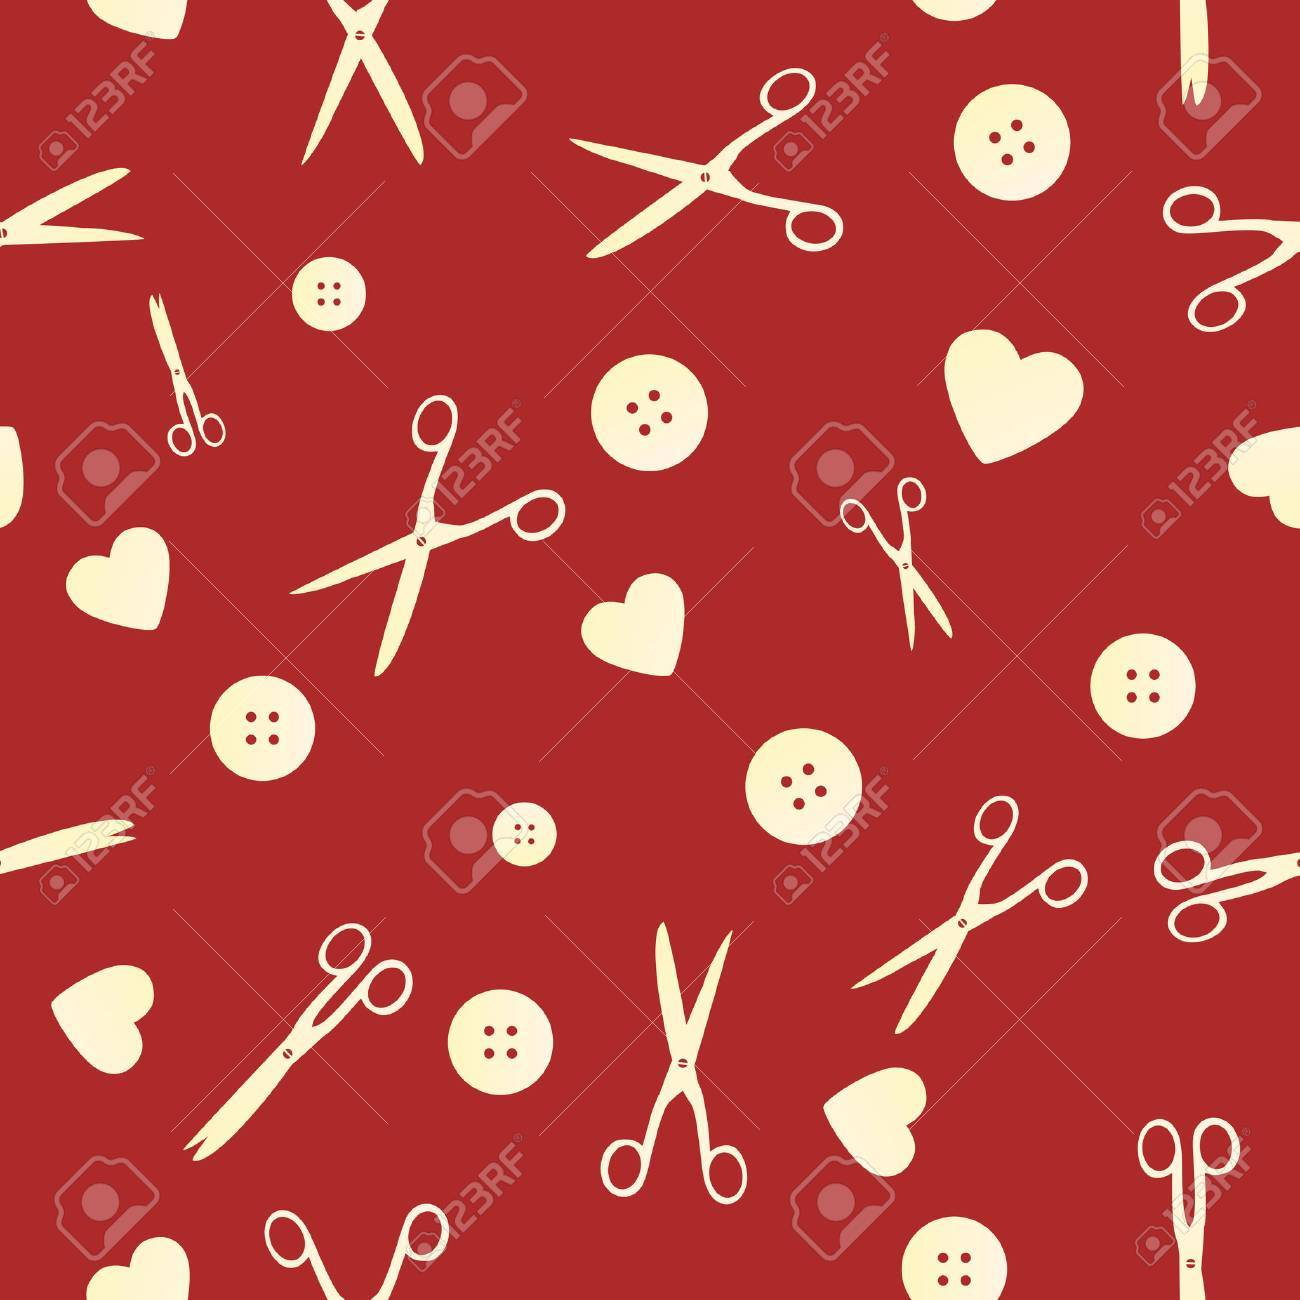 sewing tile with scissors, buttons and love Stock Vector - 4962980